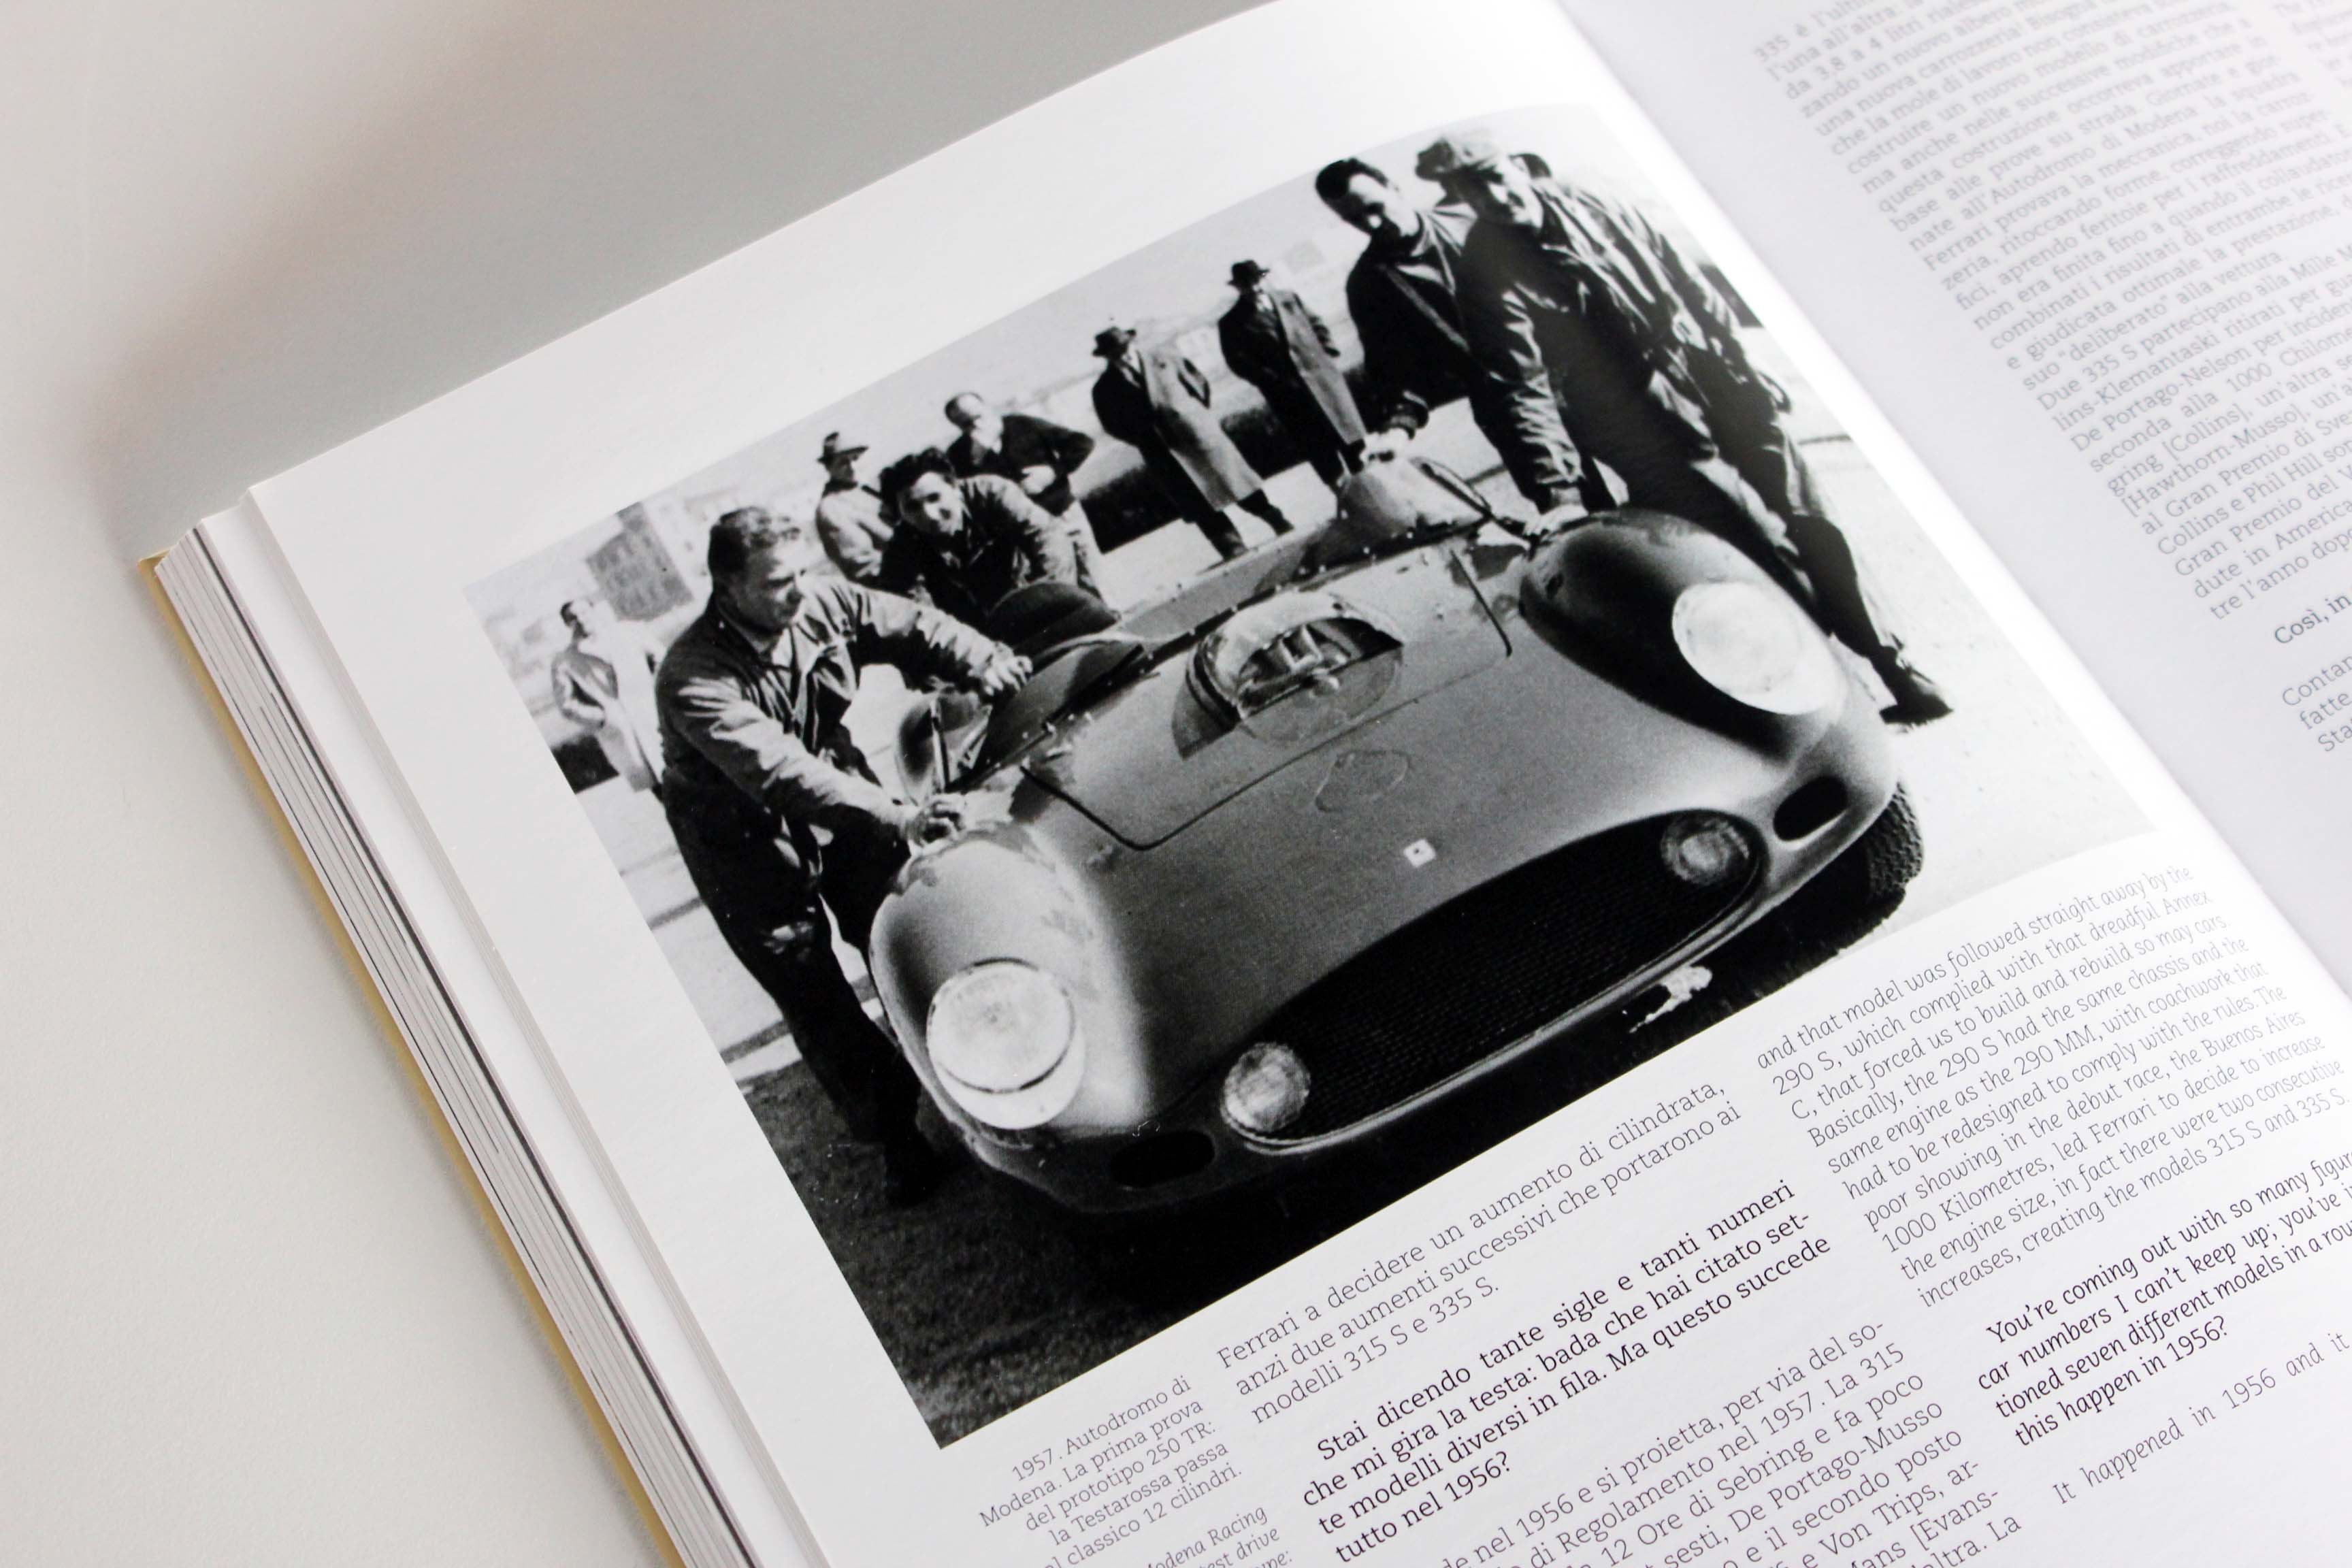 Ferrari 250 TR in Gian Carlo Guerra interview